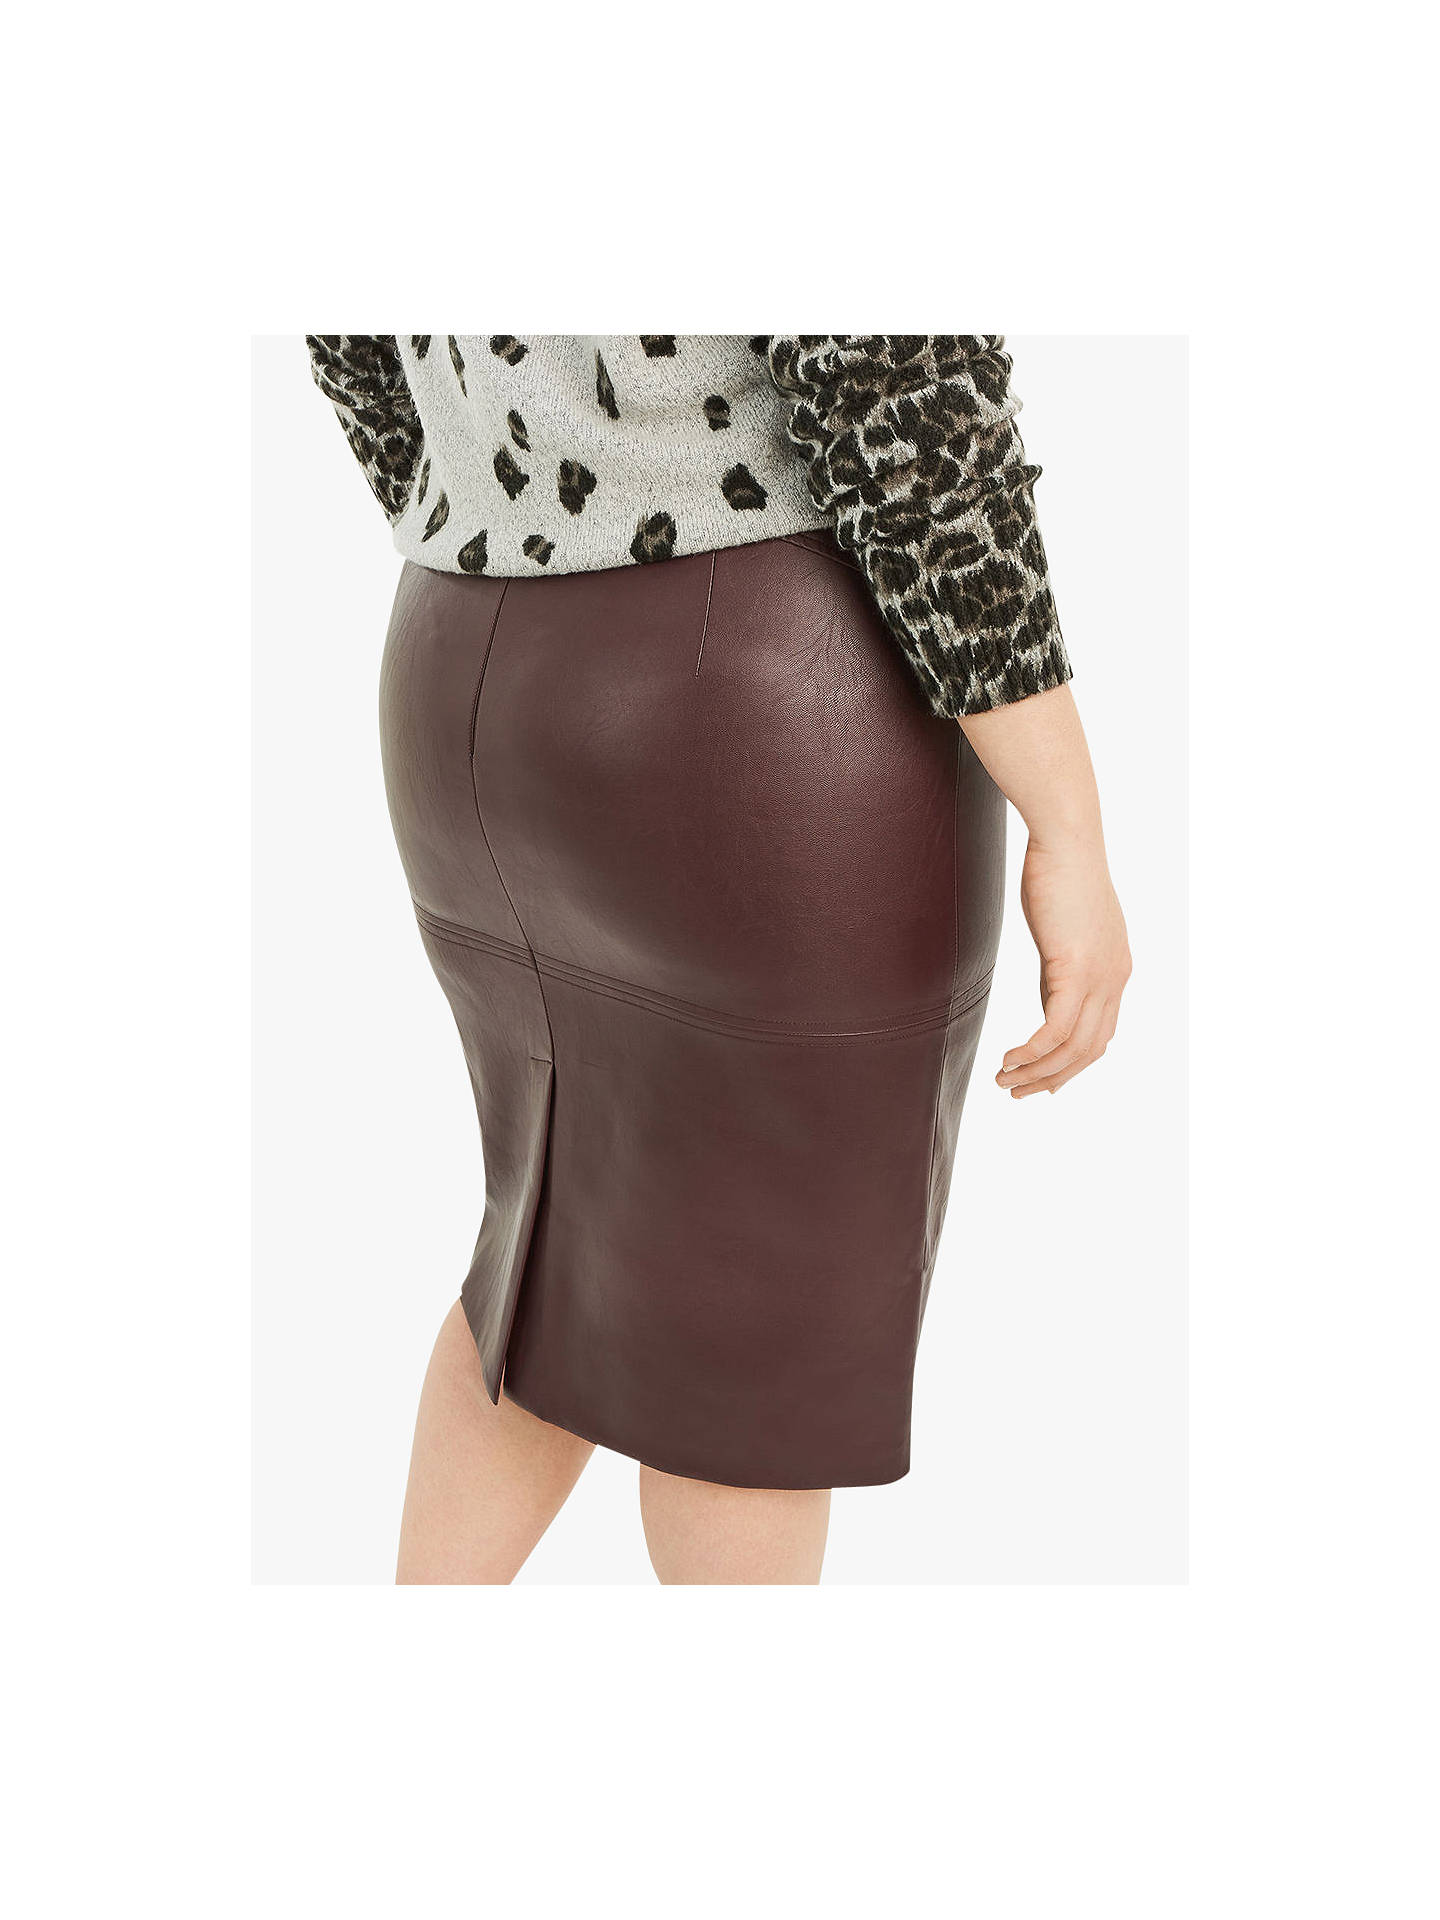 Super discount new photos classic shoes Oasis Curve Faux Leather Pencil Skirt, Burgundy at John ...